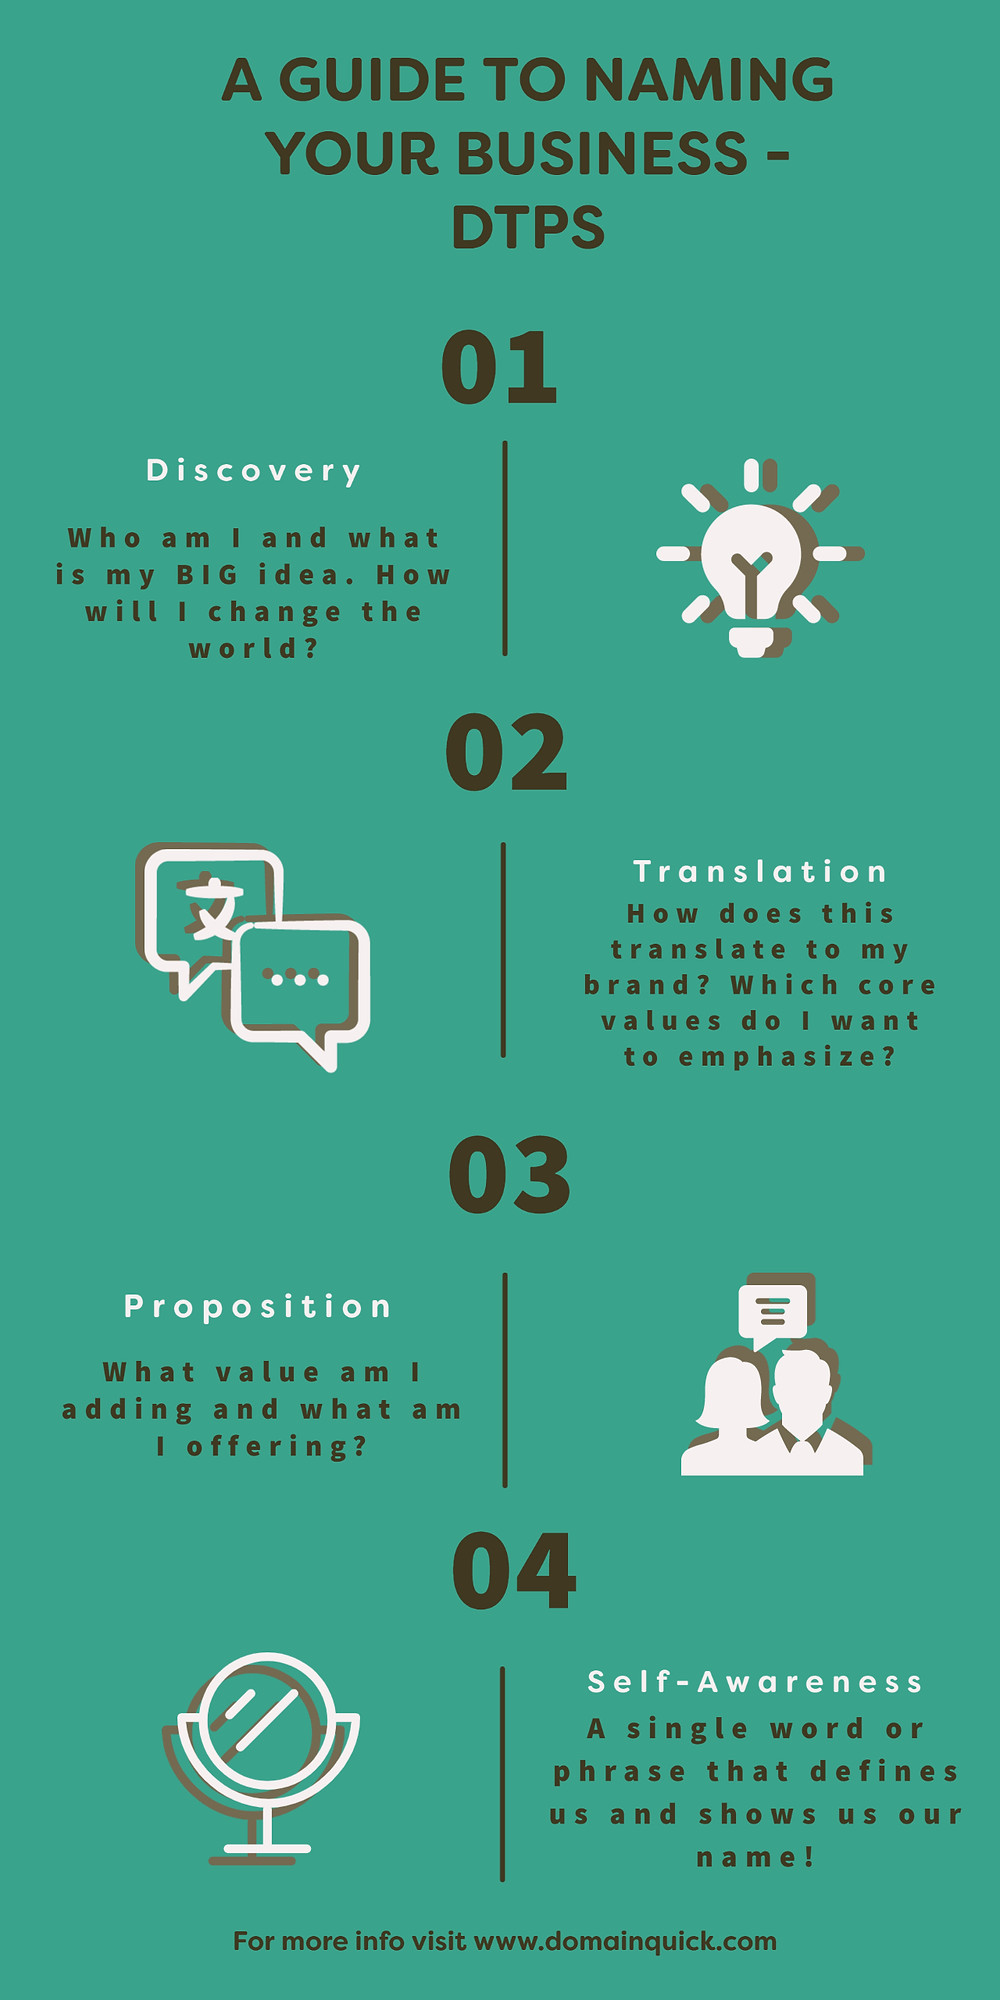 Guide to naming your business - DTPS